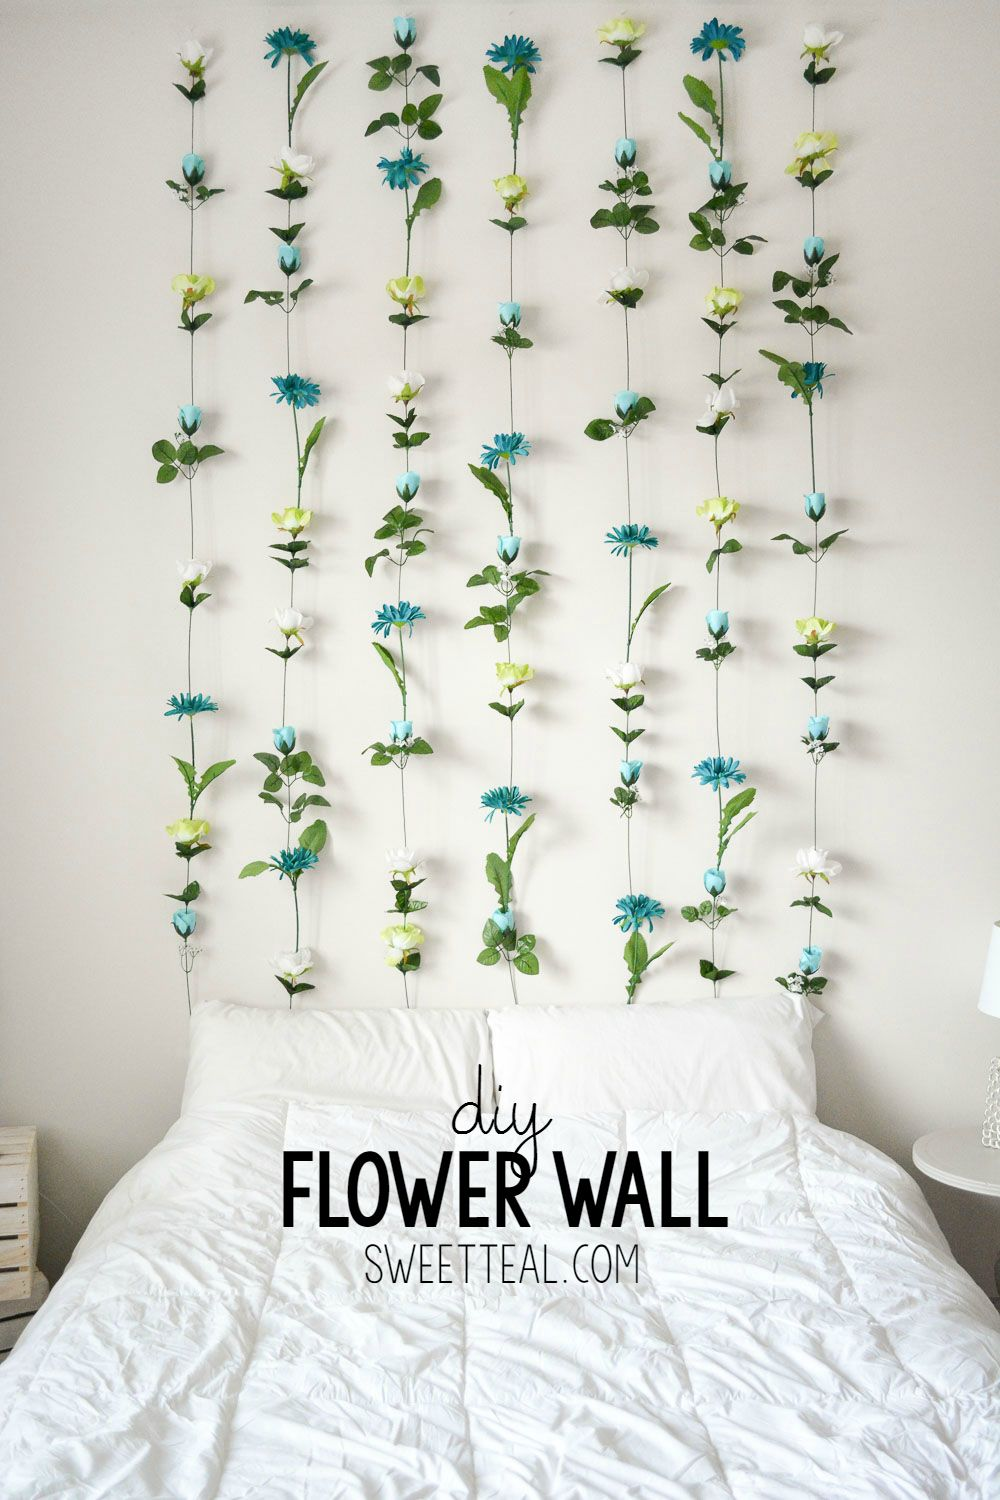 diy flower wall headboard home decor diy bedroom decor rh pinterest com